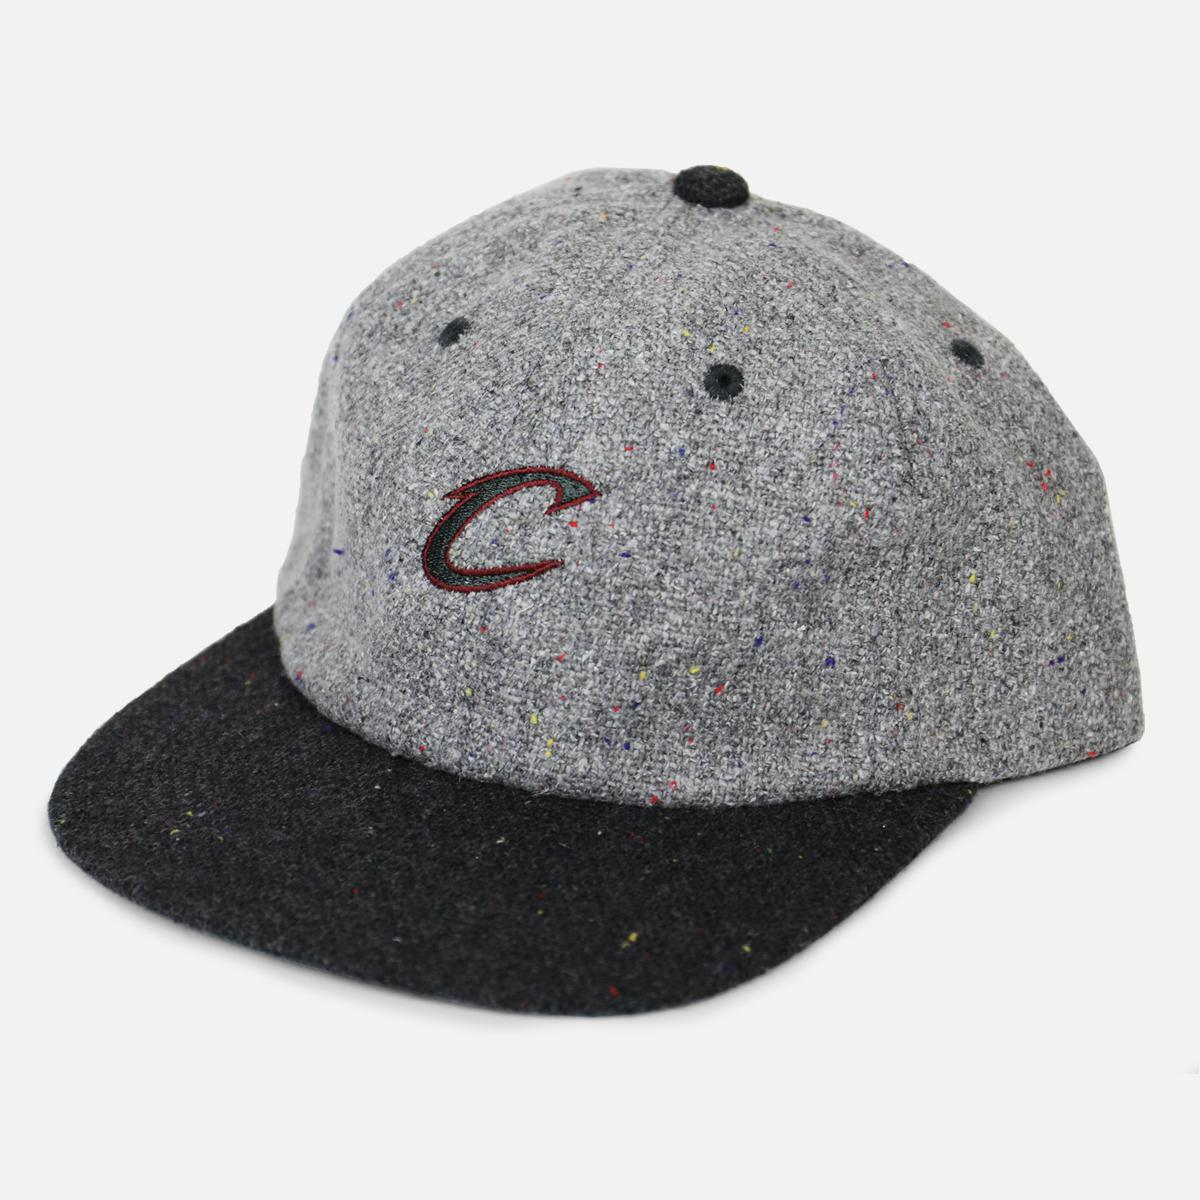 d81170d1df1 Lyst - Mitchell   Ness Cleveland Cavaliers Speckled Dad Hat in Gray ...